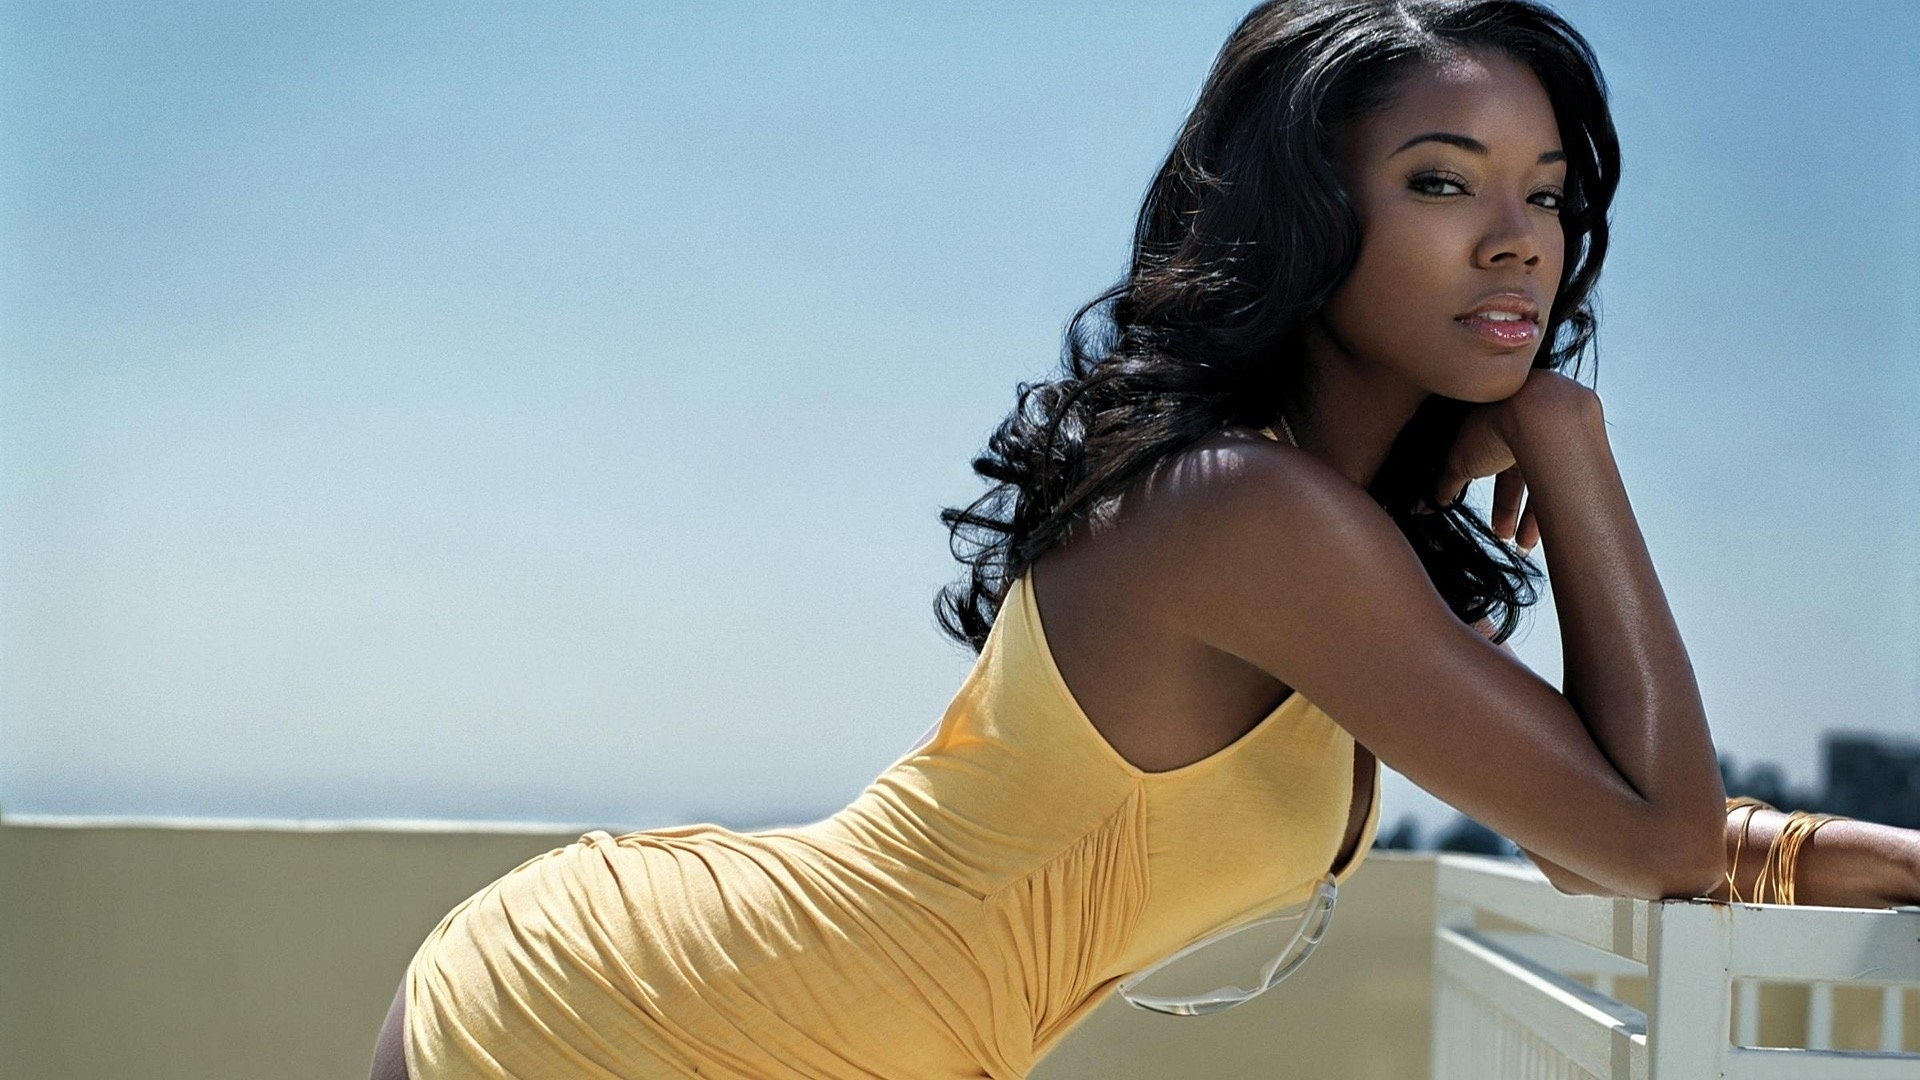 1920x1080 - Gabrielle Union Wallpapers 1